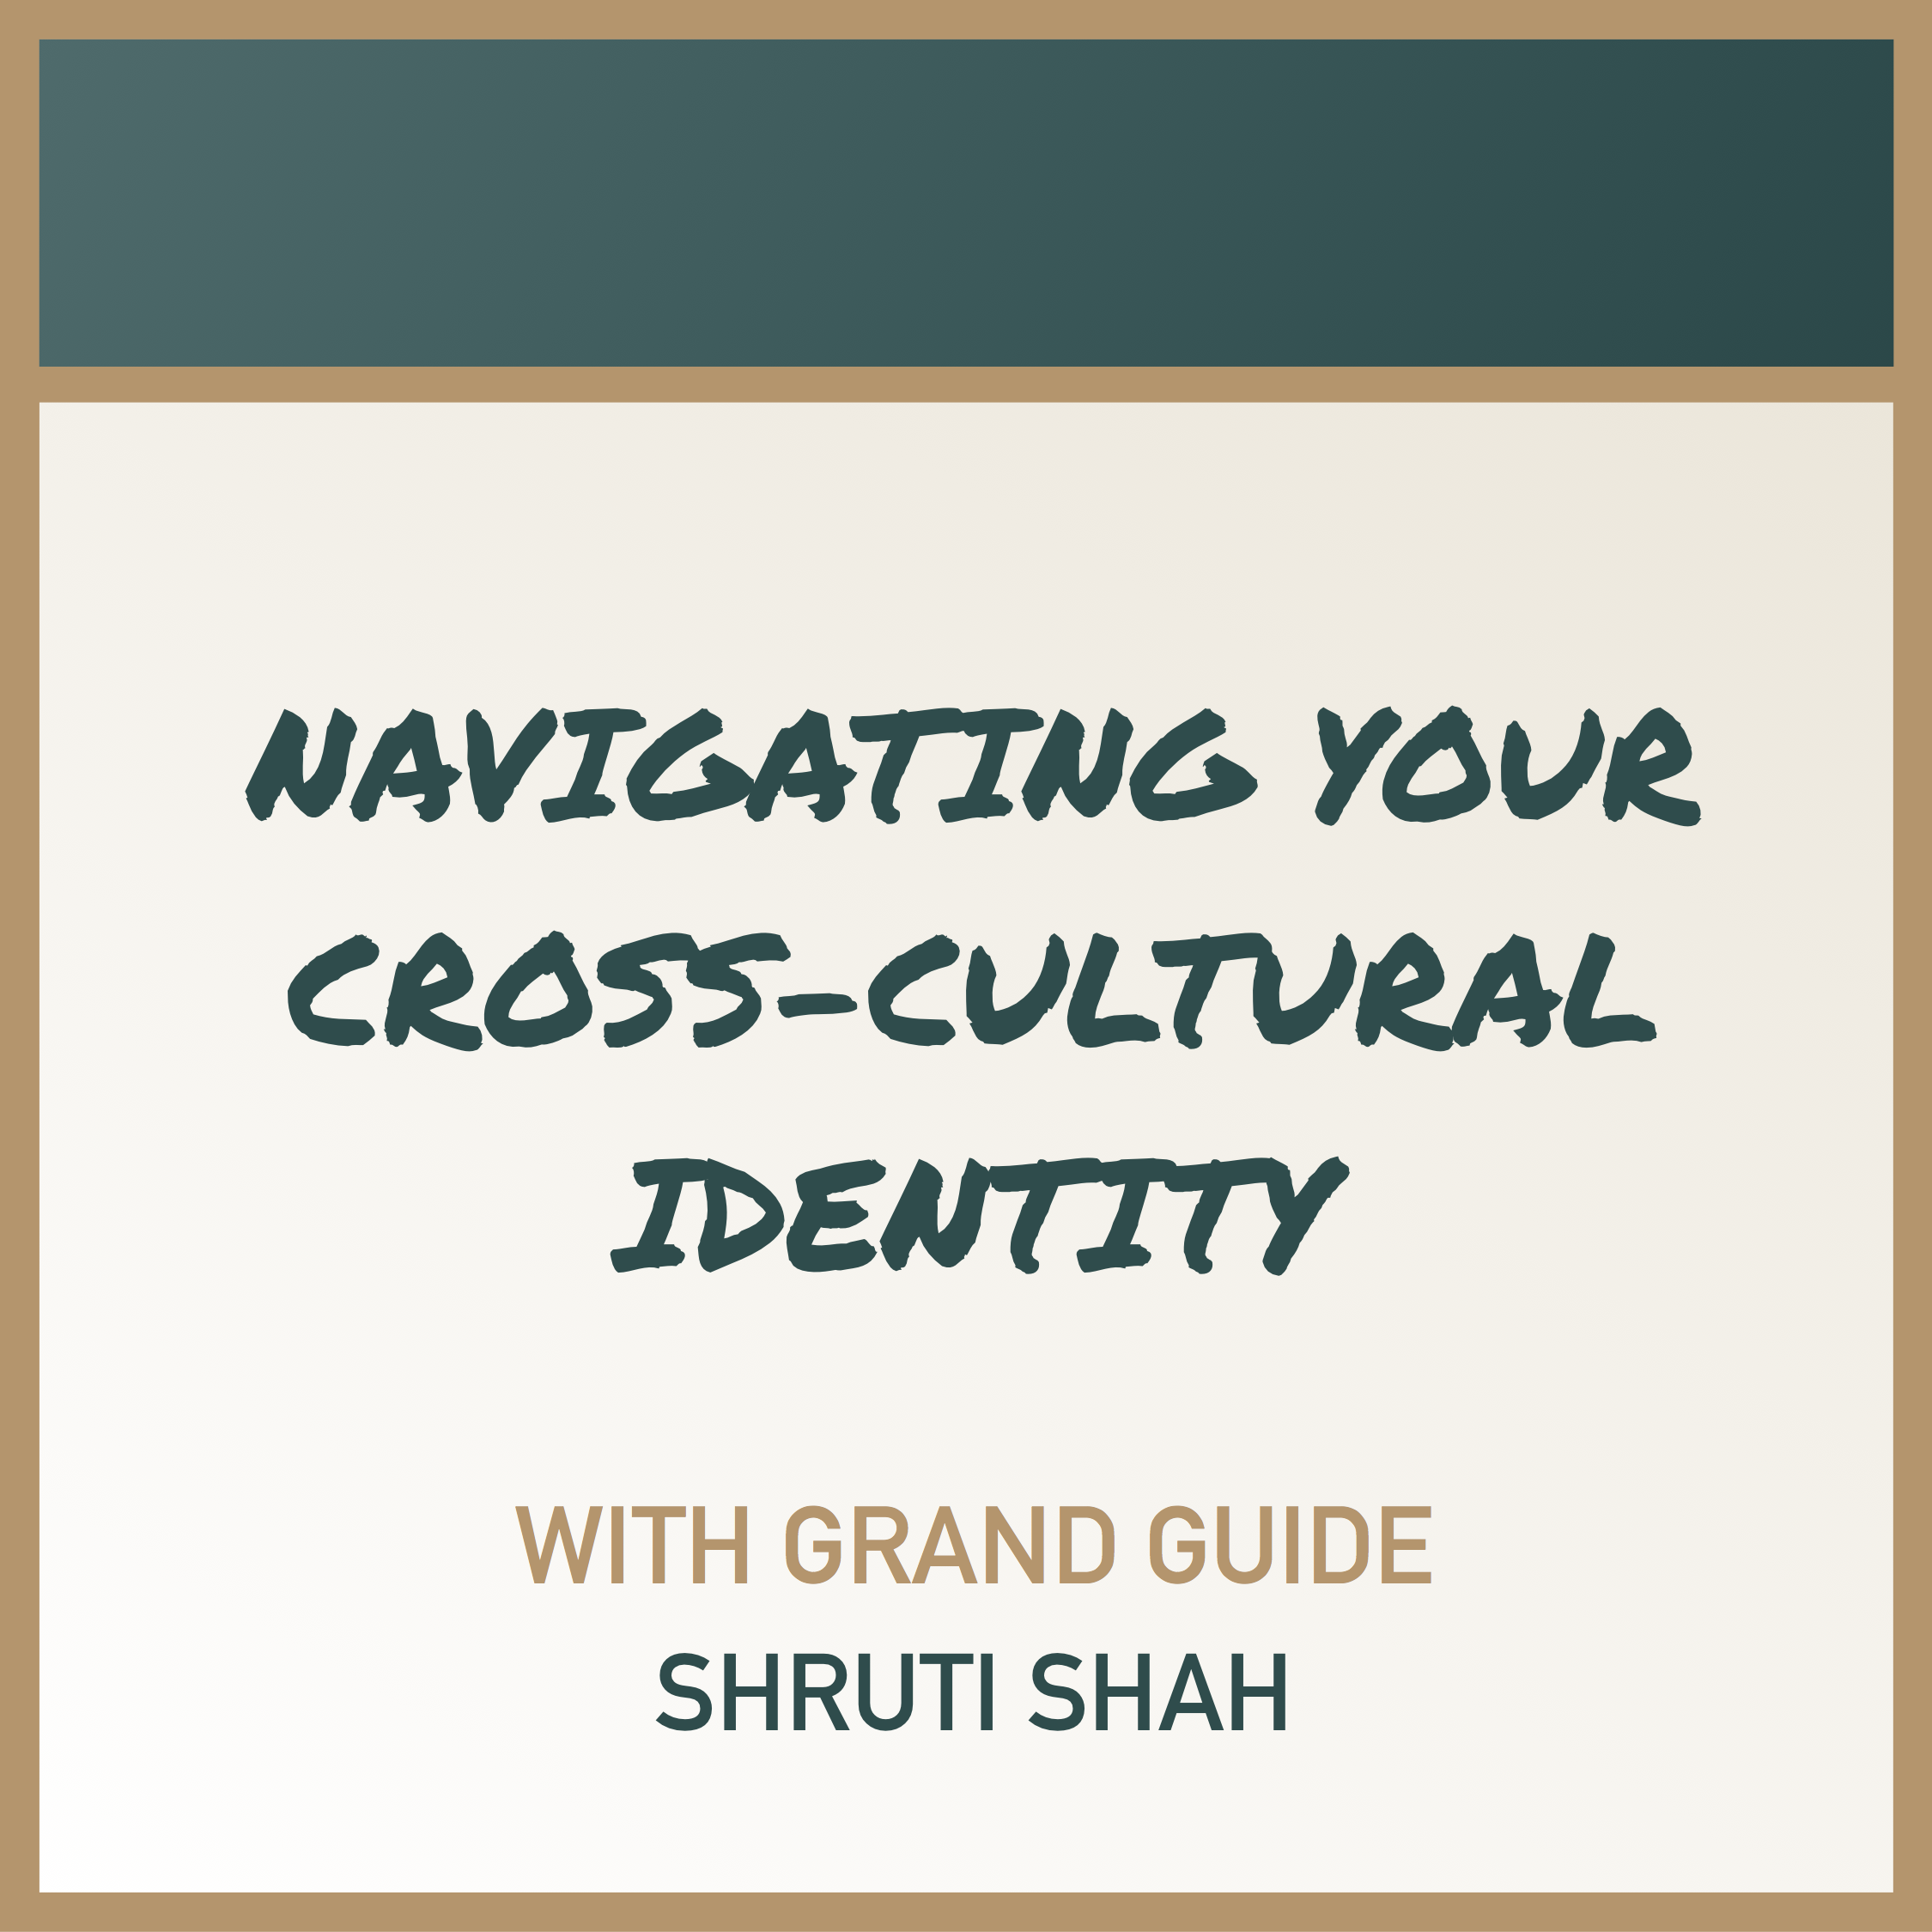 Navigating your cross-cultural identity. .png